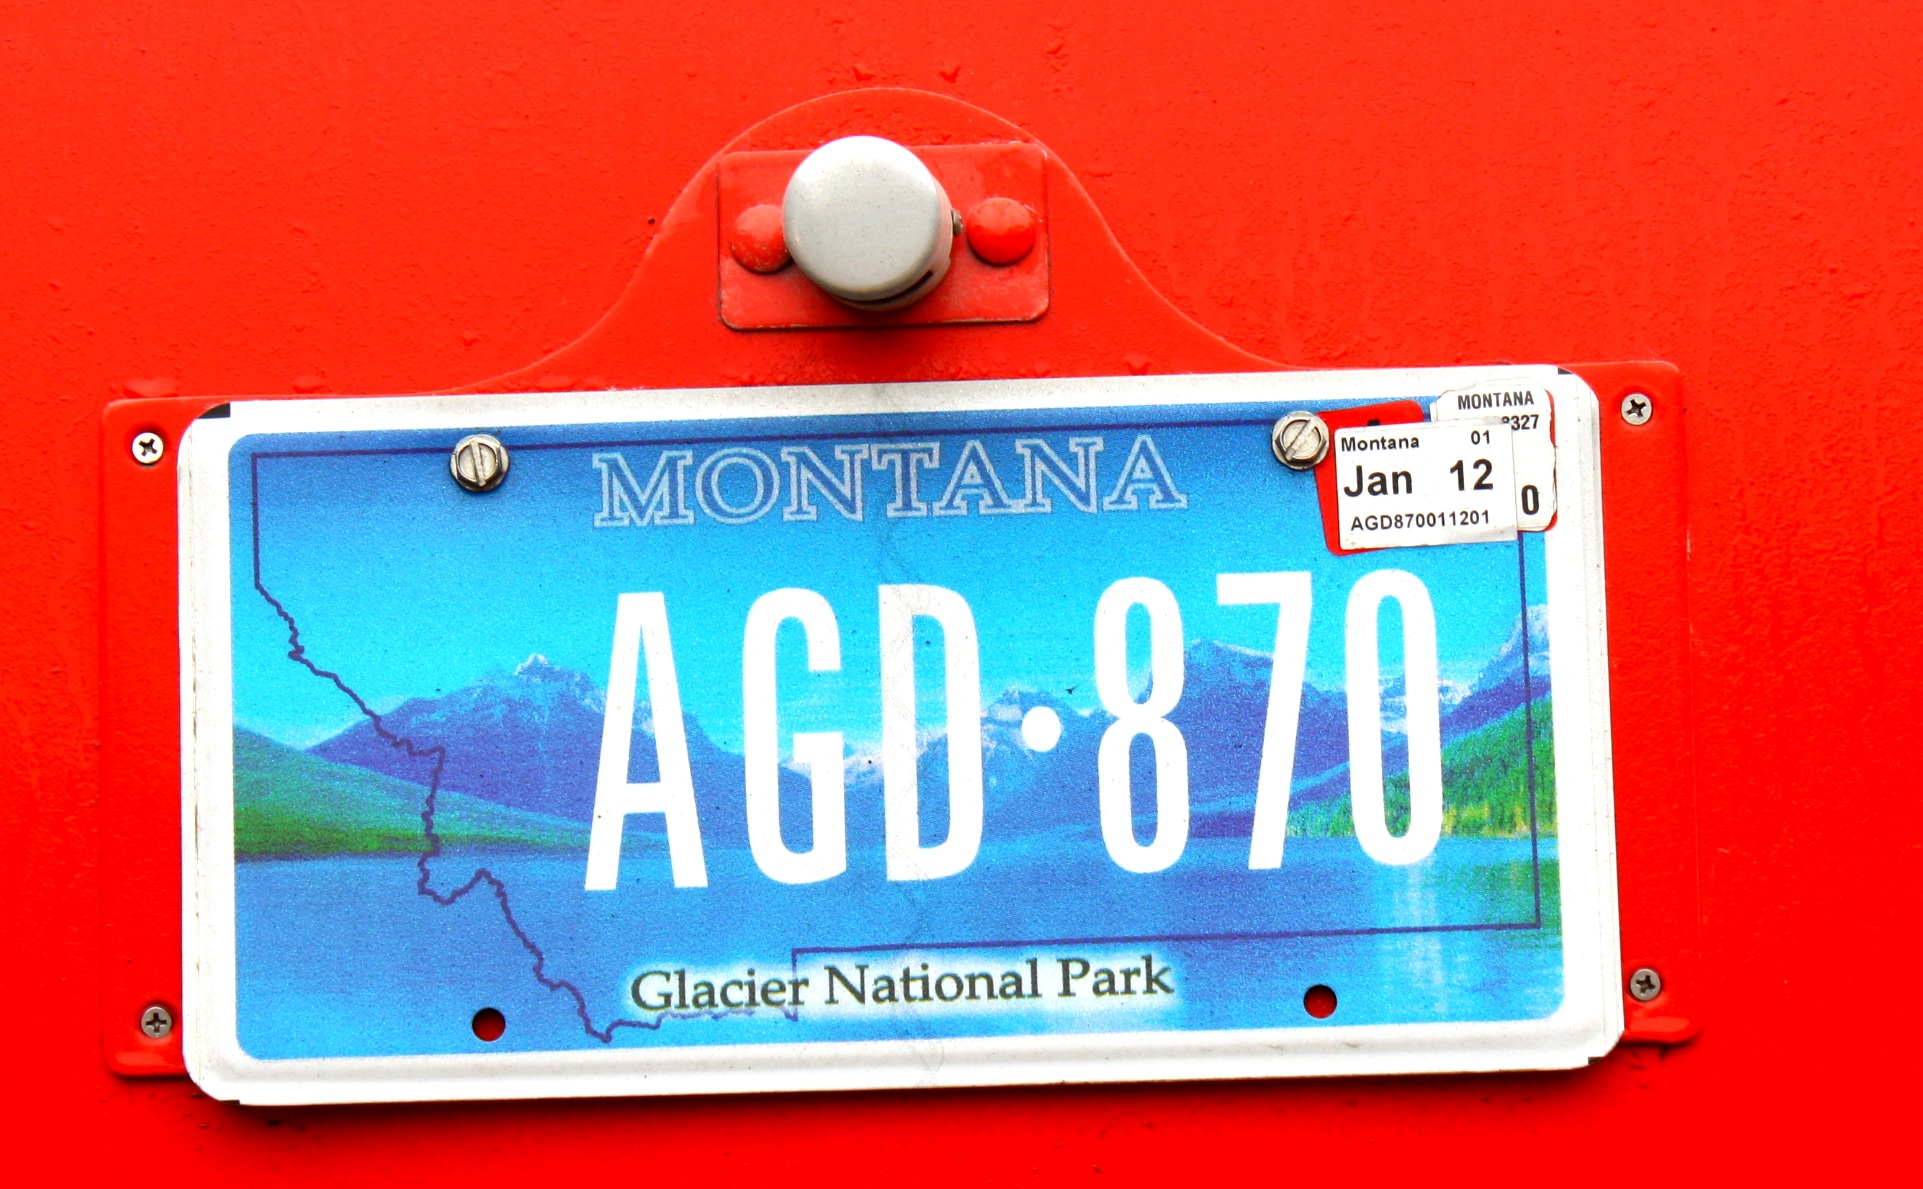 montana license plate on red vehicle